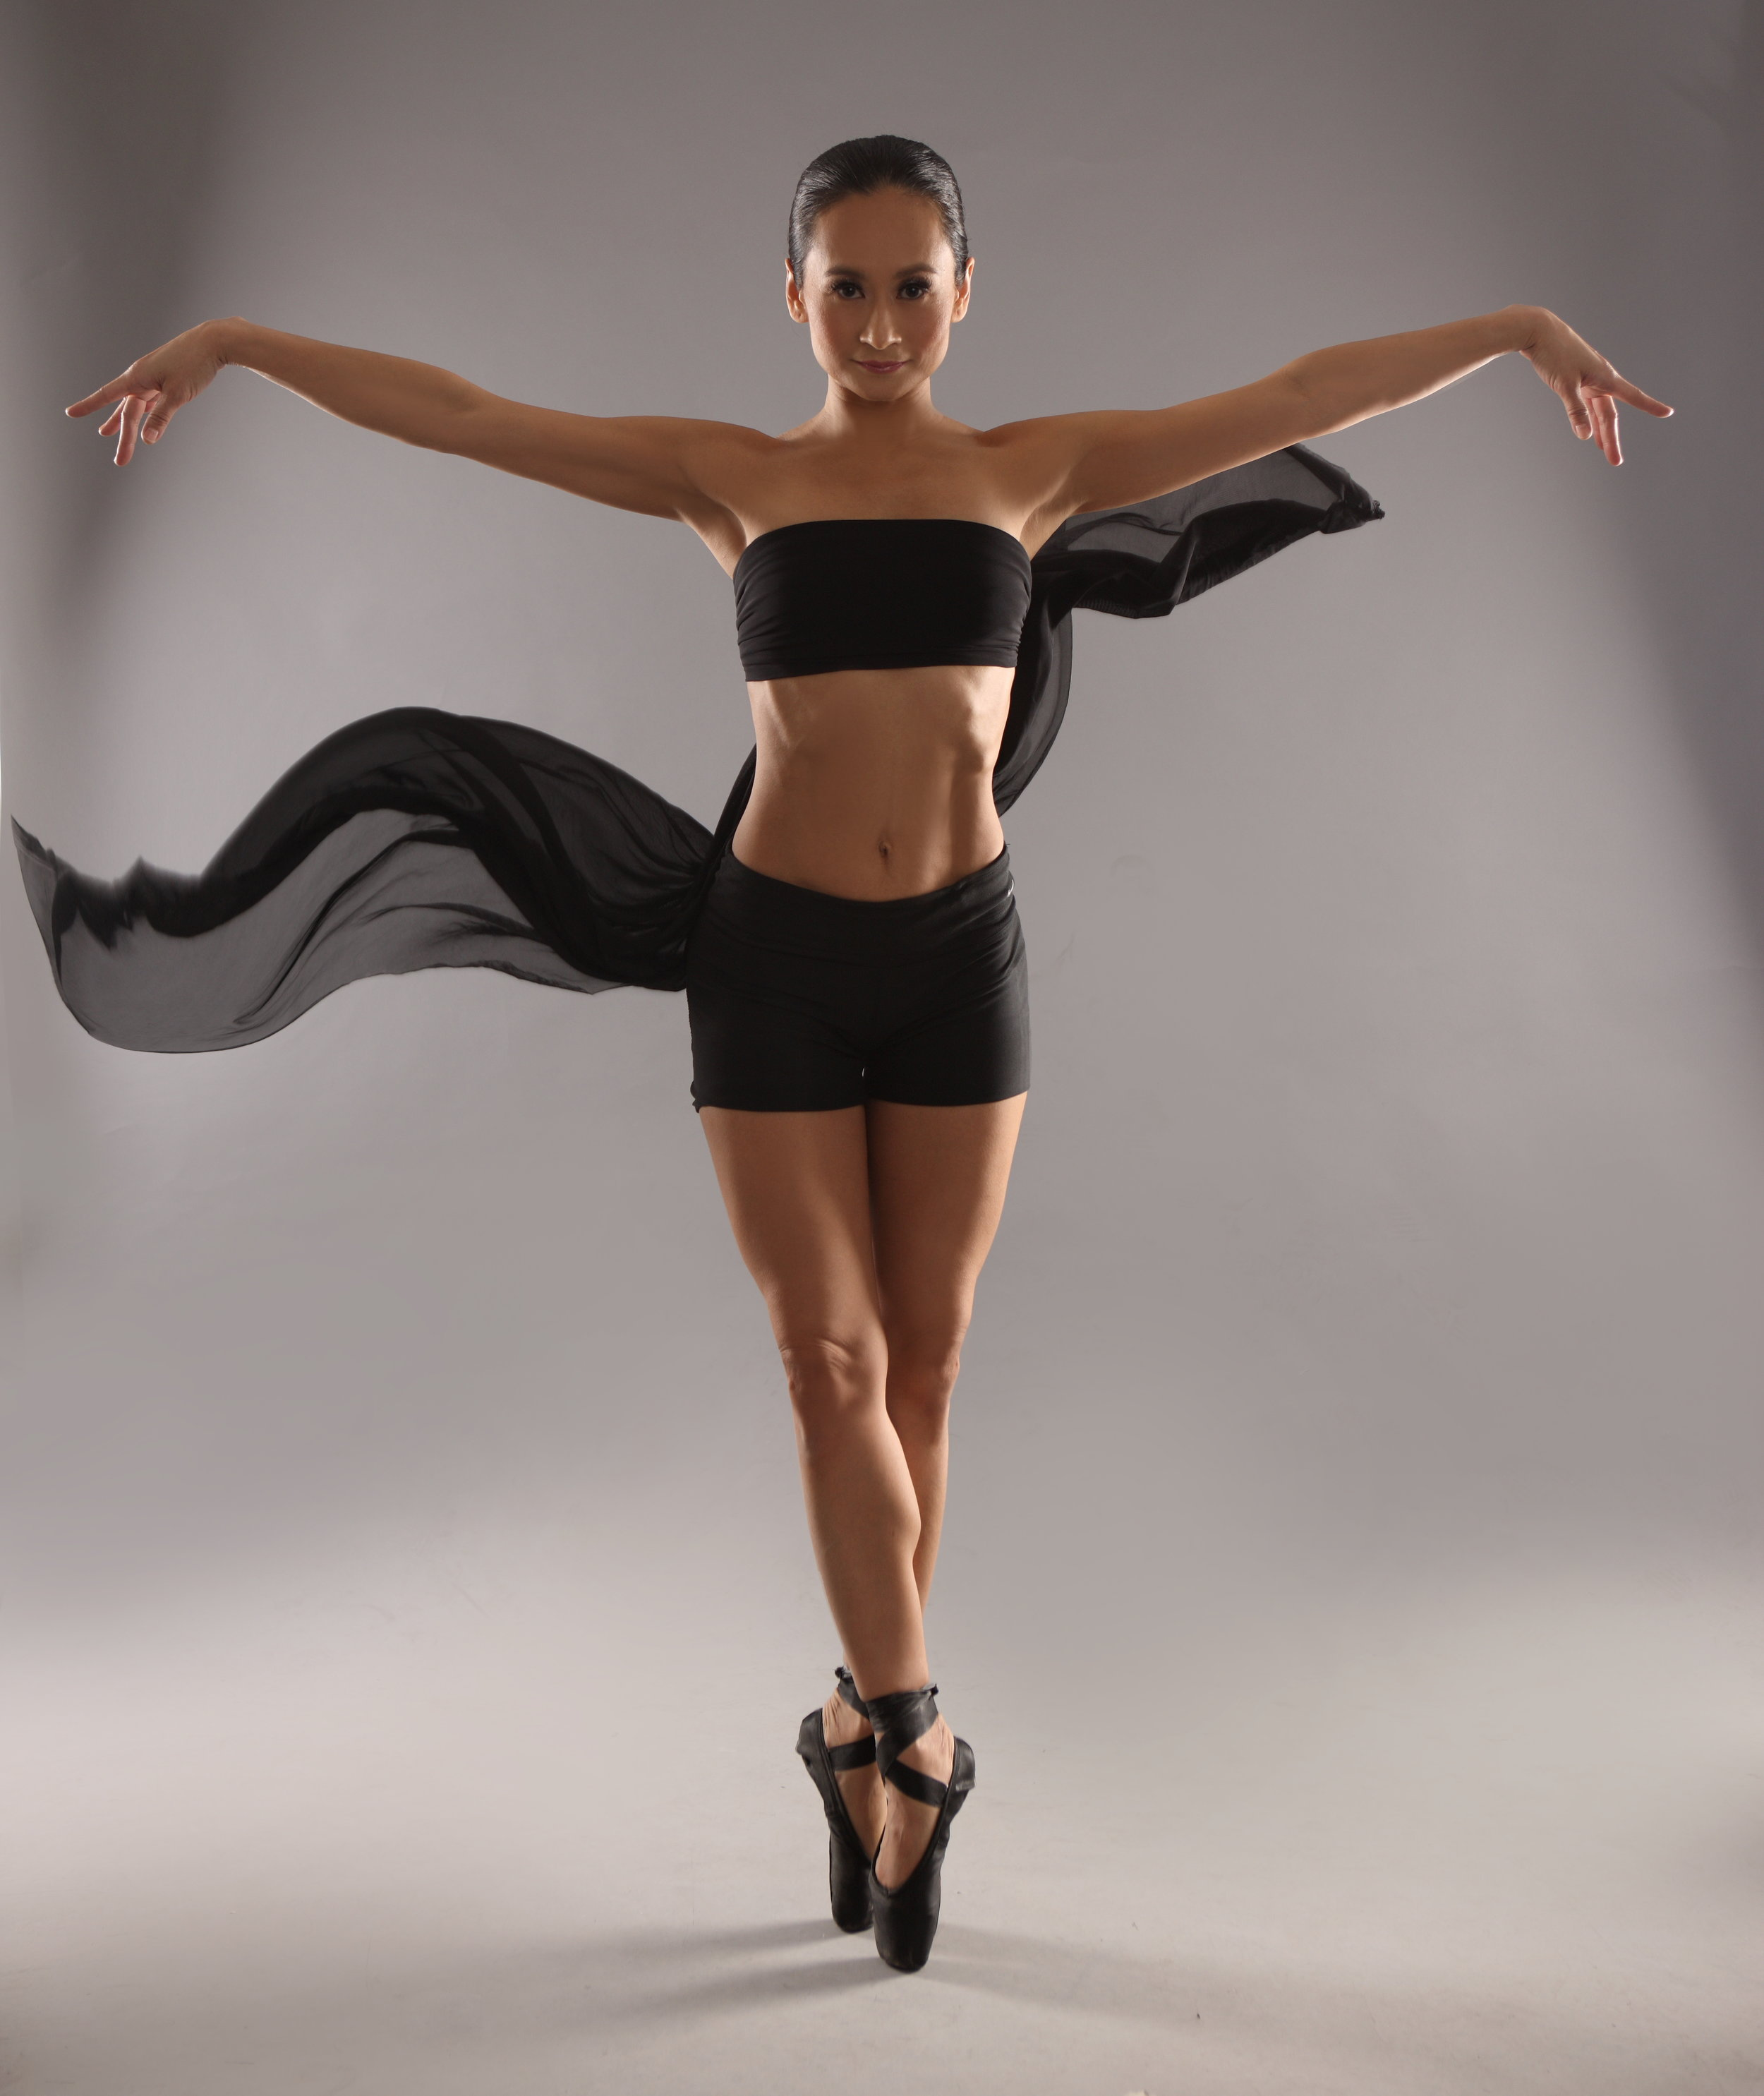 Correct training, proper nutrition, and a balanced lifestyle allowed Lisa Macuja-Elizalde to enjoy an unusually long professional dancing career. Now, even in semi-retirement, she continues to work hard to keep herself fit and strong for her family and her company. Photo by Sara Black